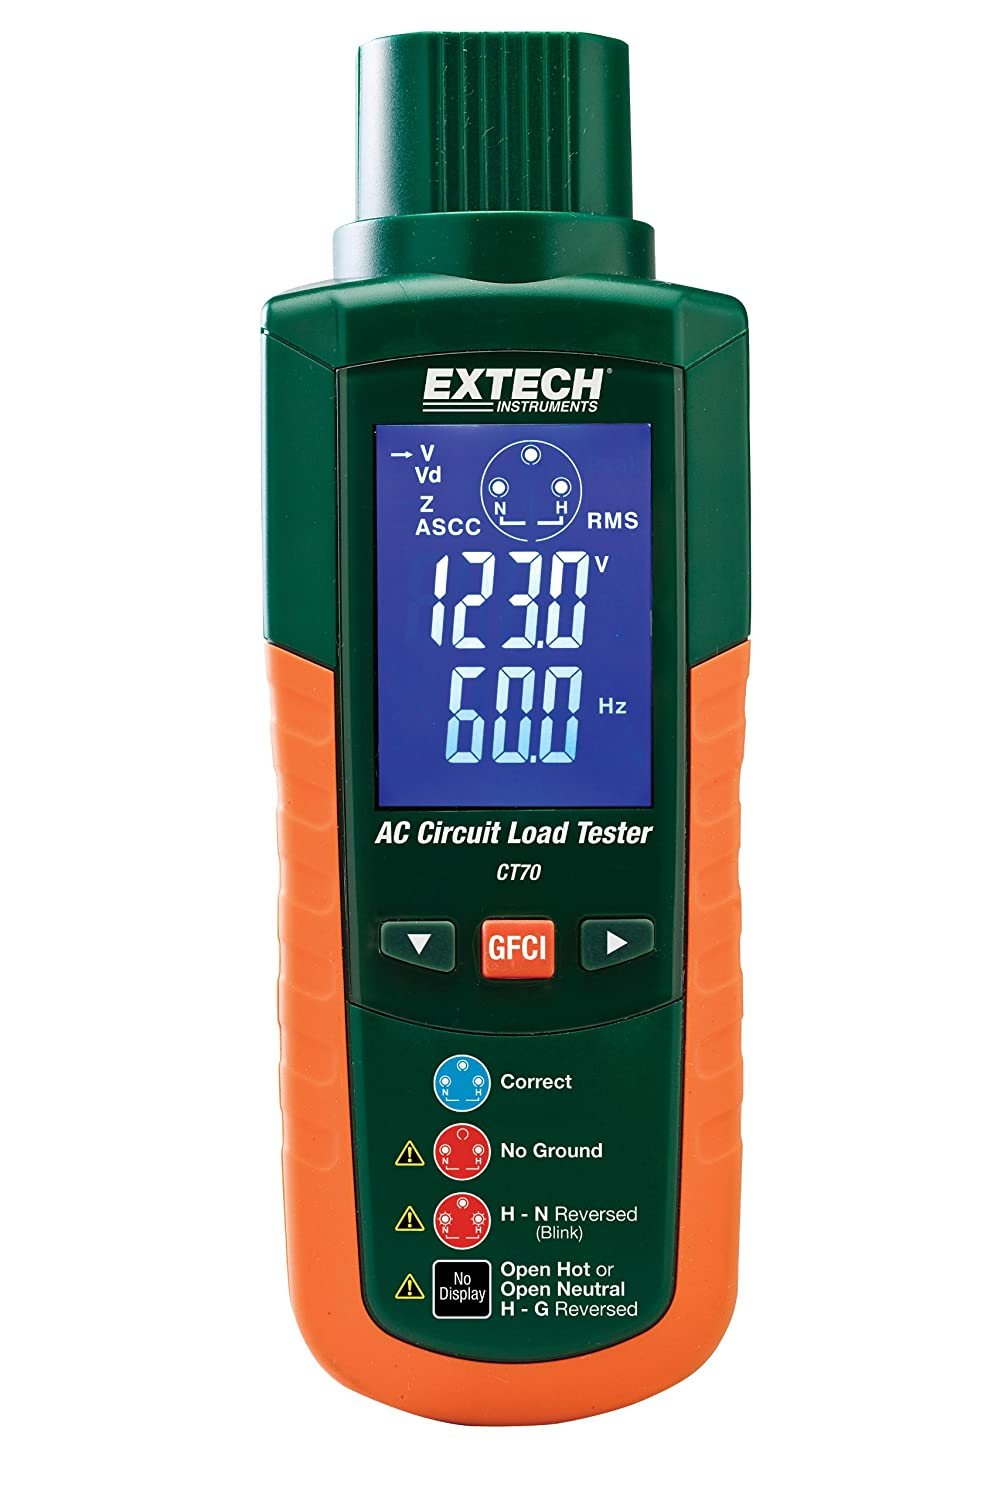 Extech Ct70 Ac Circuit Load Tester Voltage Testers Tools Home Improvement Electrical